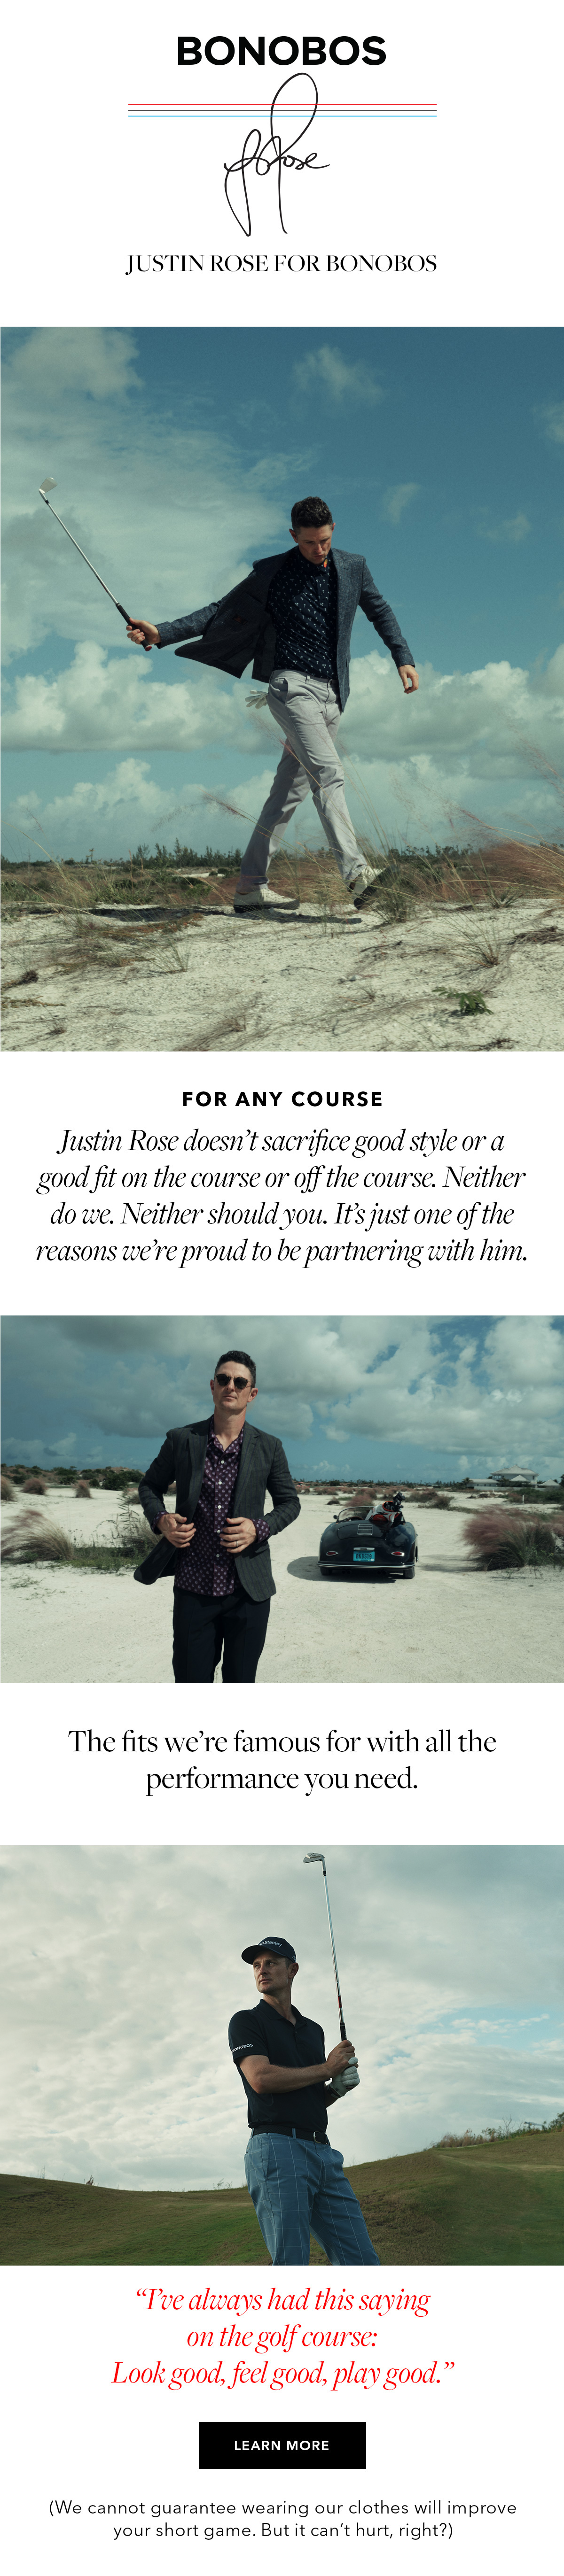 JUSTIN ROSE FOR BONOBOS // Justin Rose doesn't sacrifice good style or a good fit on the course or off the course. Neither do we. Neither should you. It's just one of the reasons we're proud to be partnering with him. // LEARN MORE →